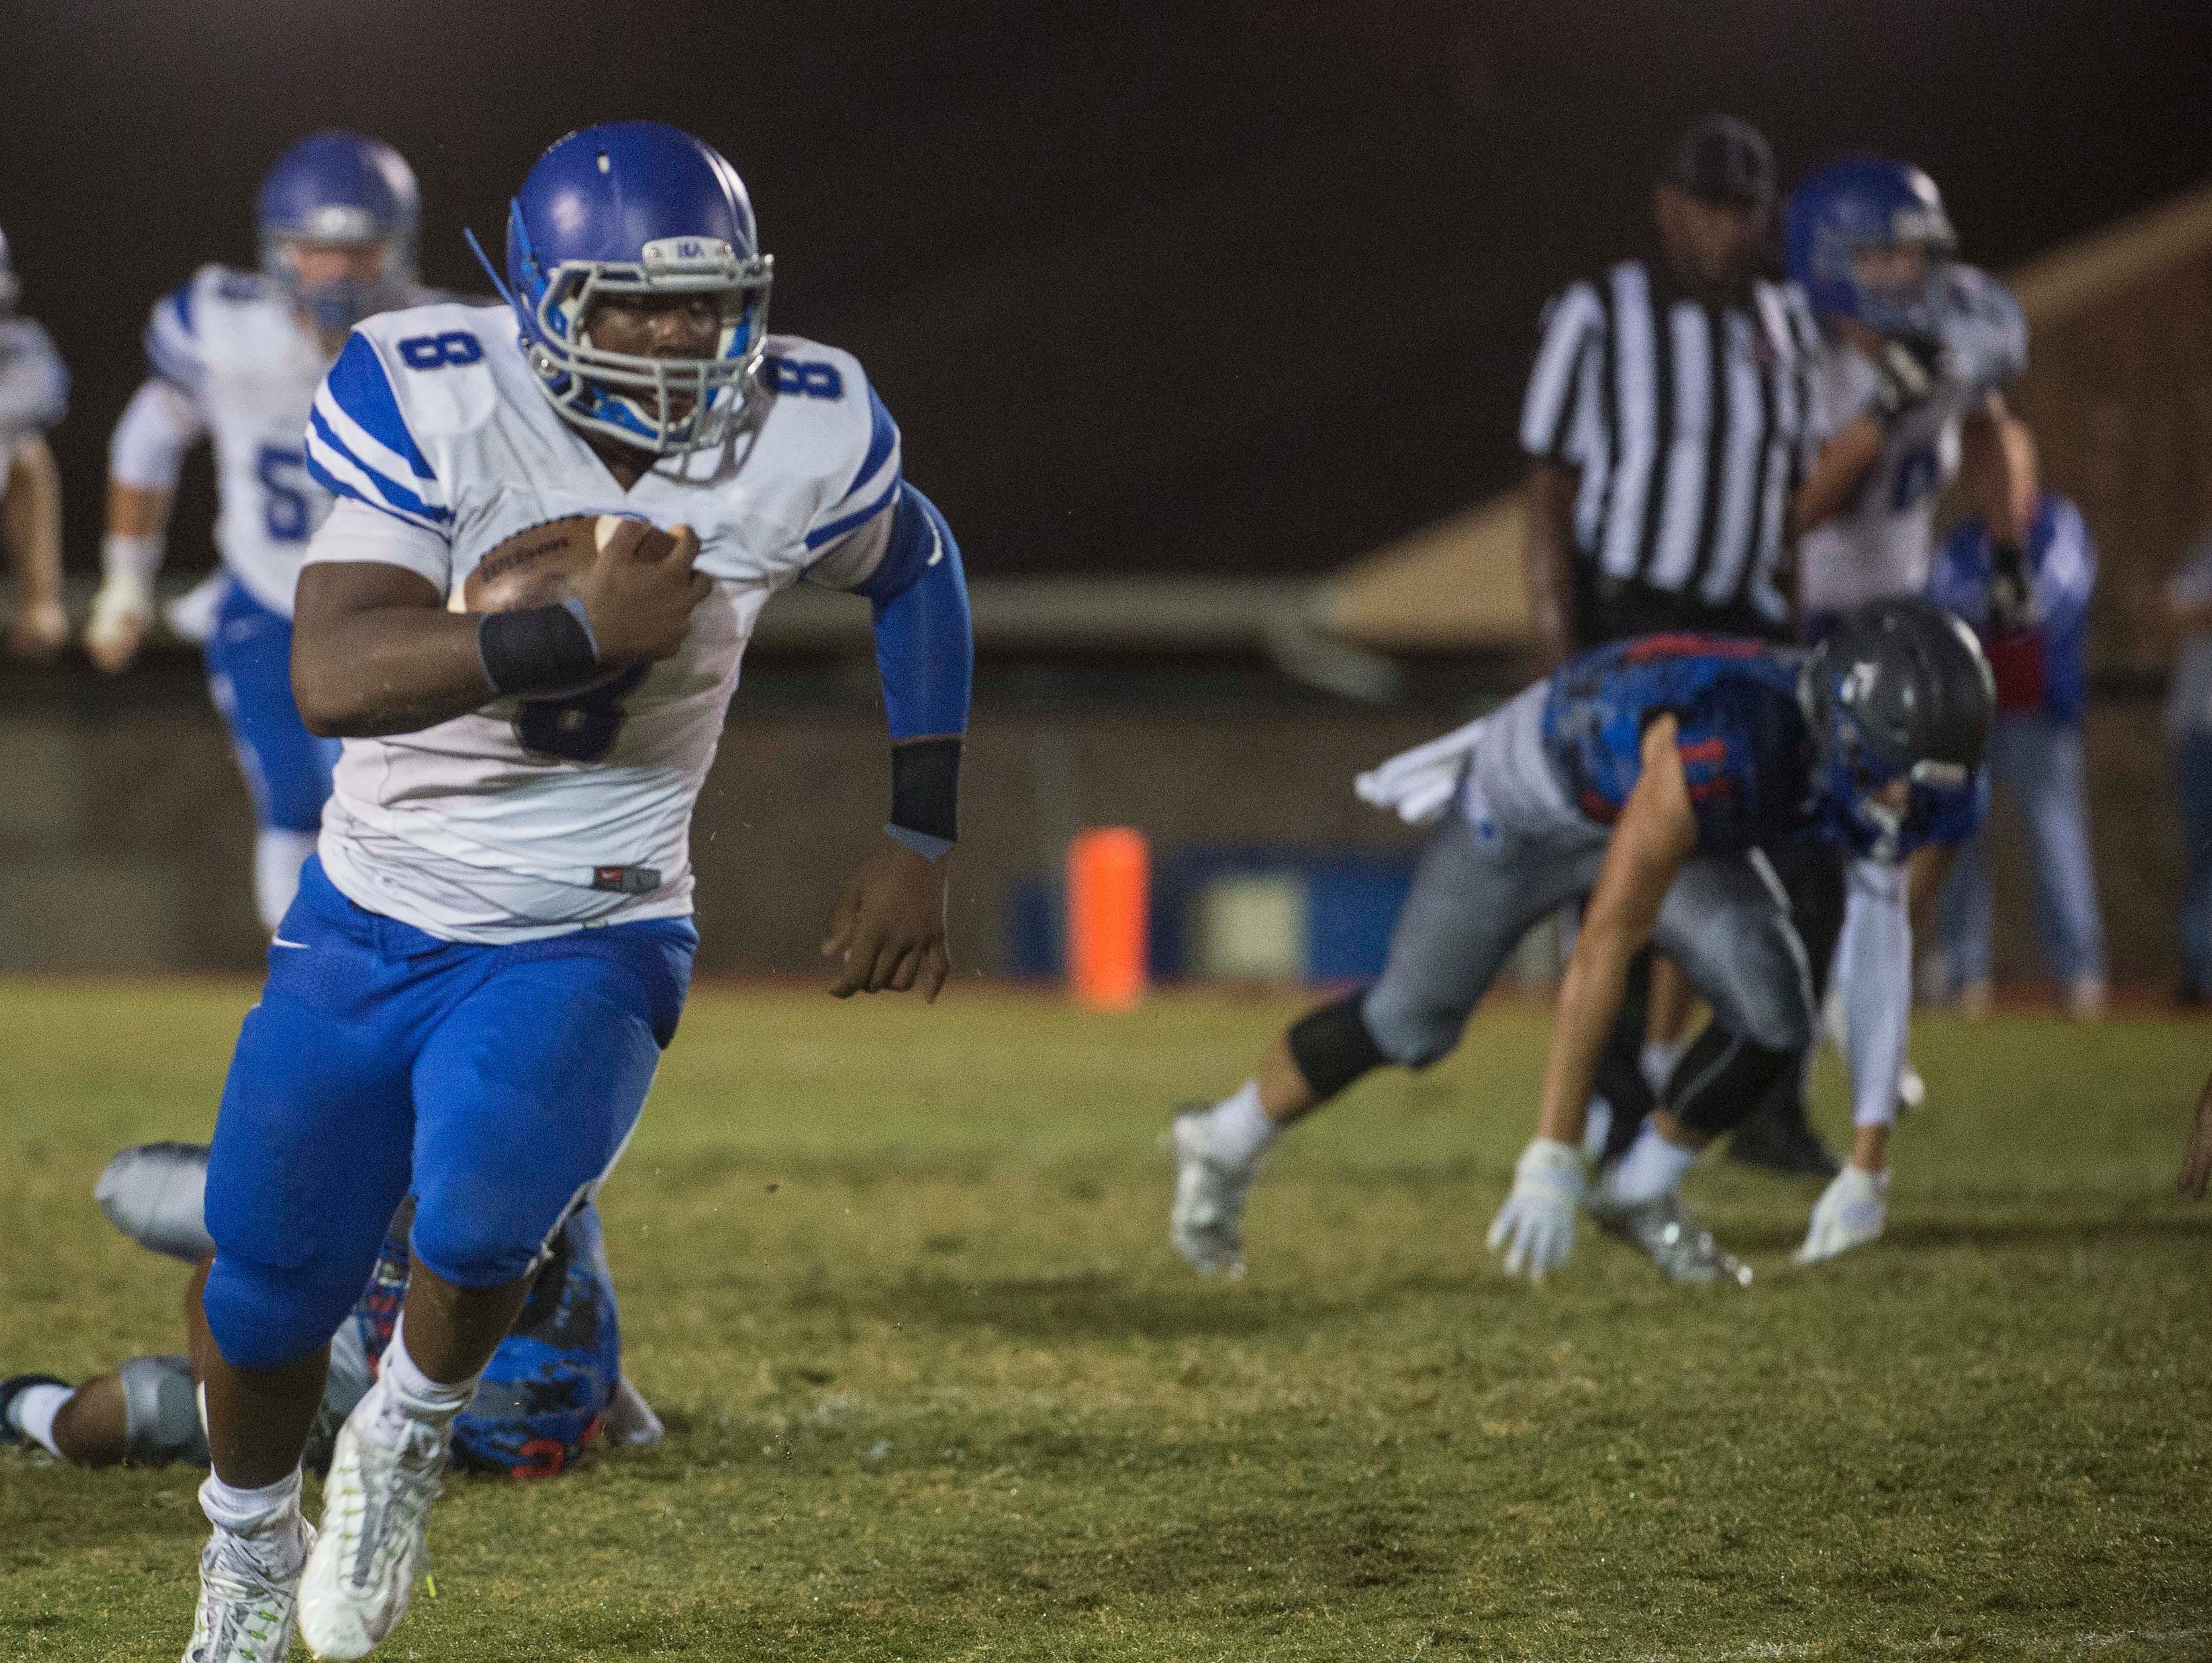 BGA's Jaylen Frierson had 147 receiving yards on 7 catches and scores a crucial touchdown in over time at Page High School on Saturday Sept. 26, 2015, in Franklin in Tenn.